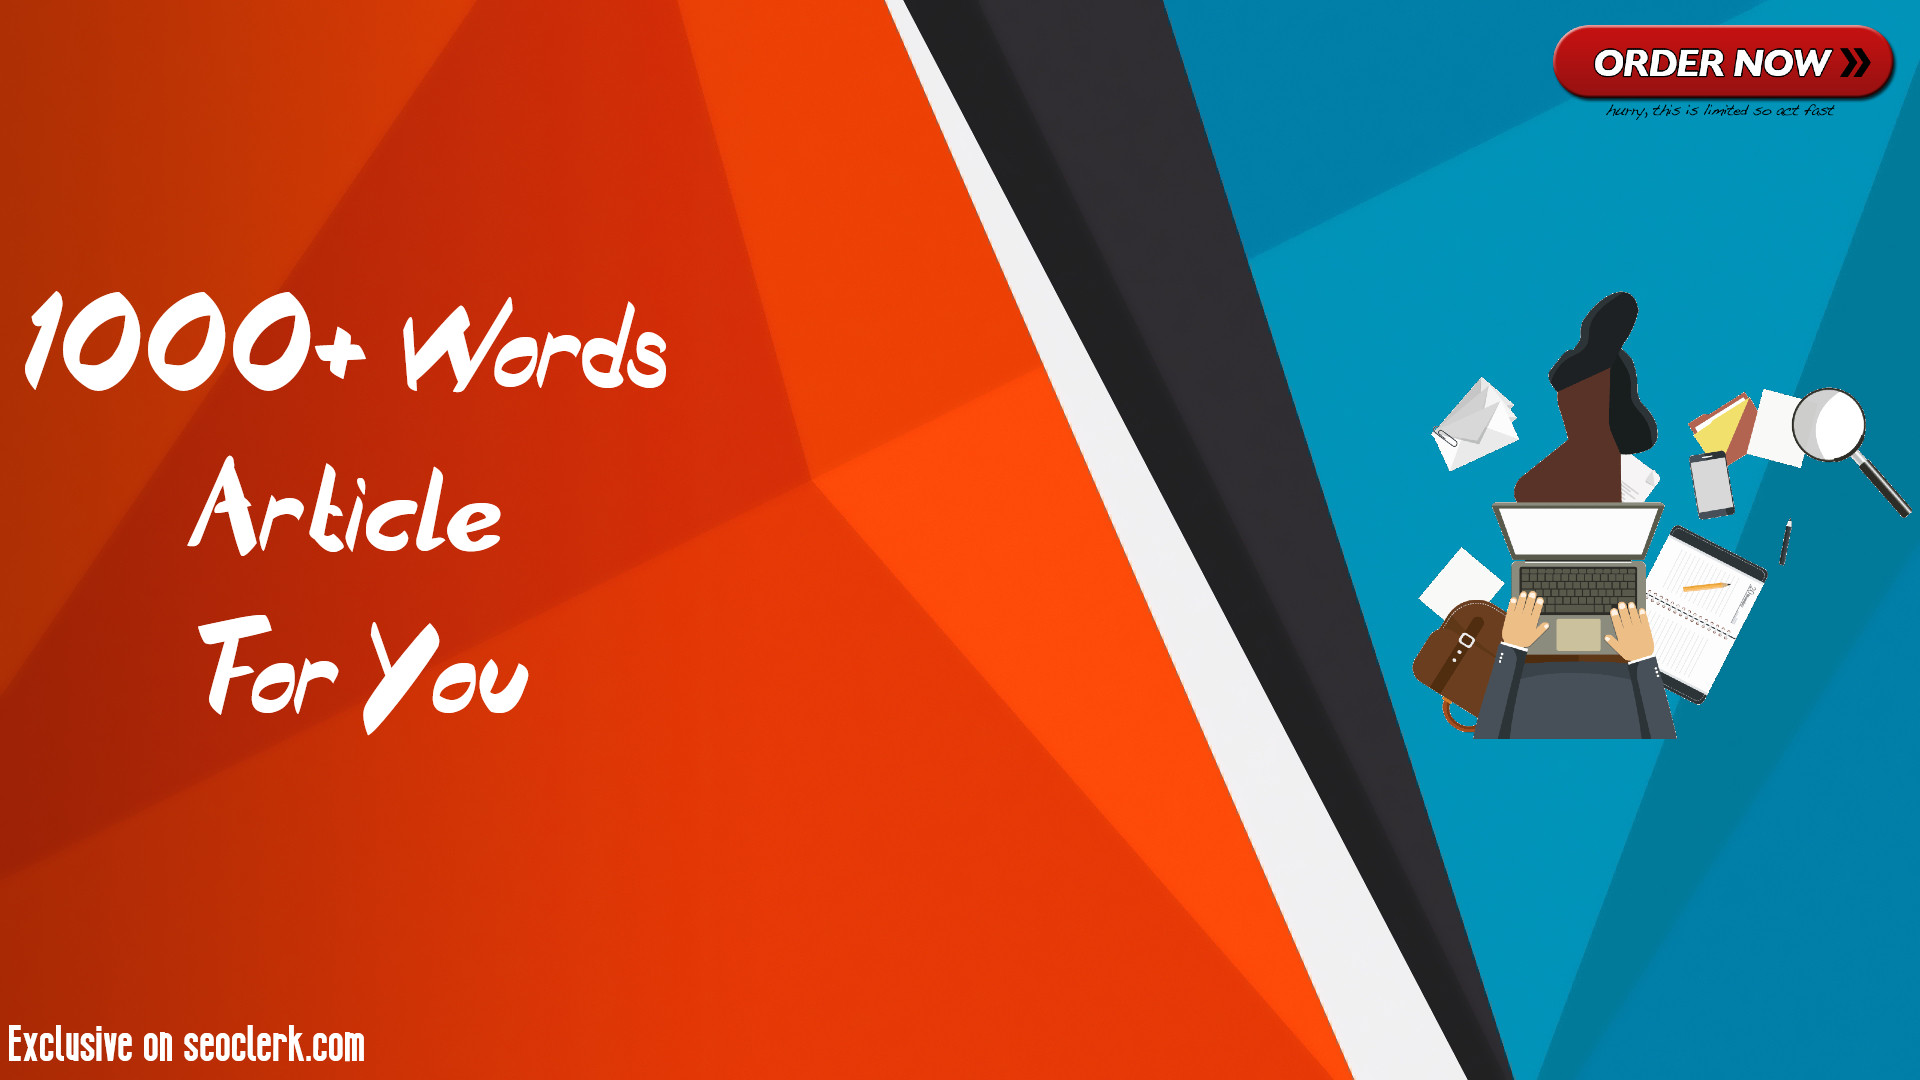 1000+ Words Seo Article For You